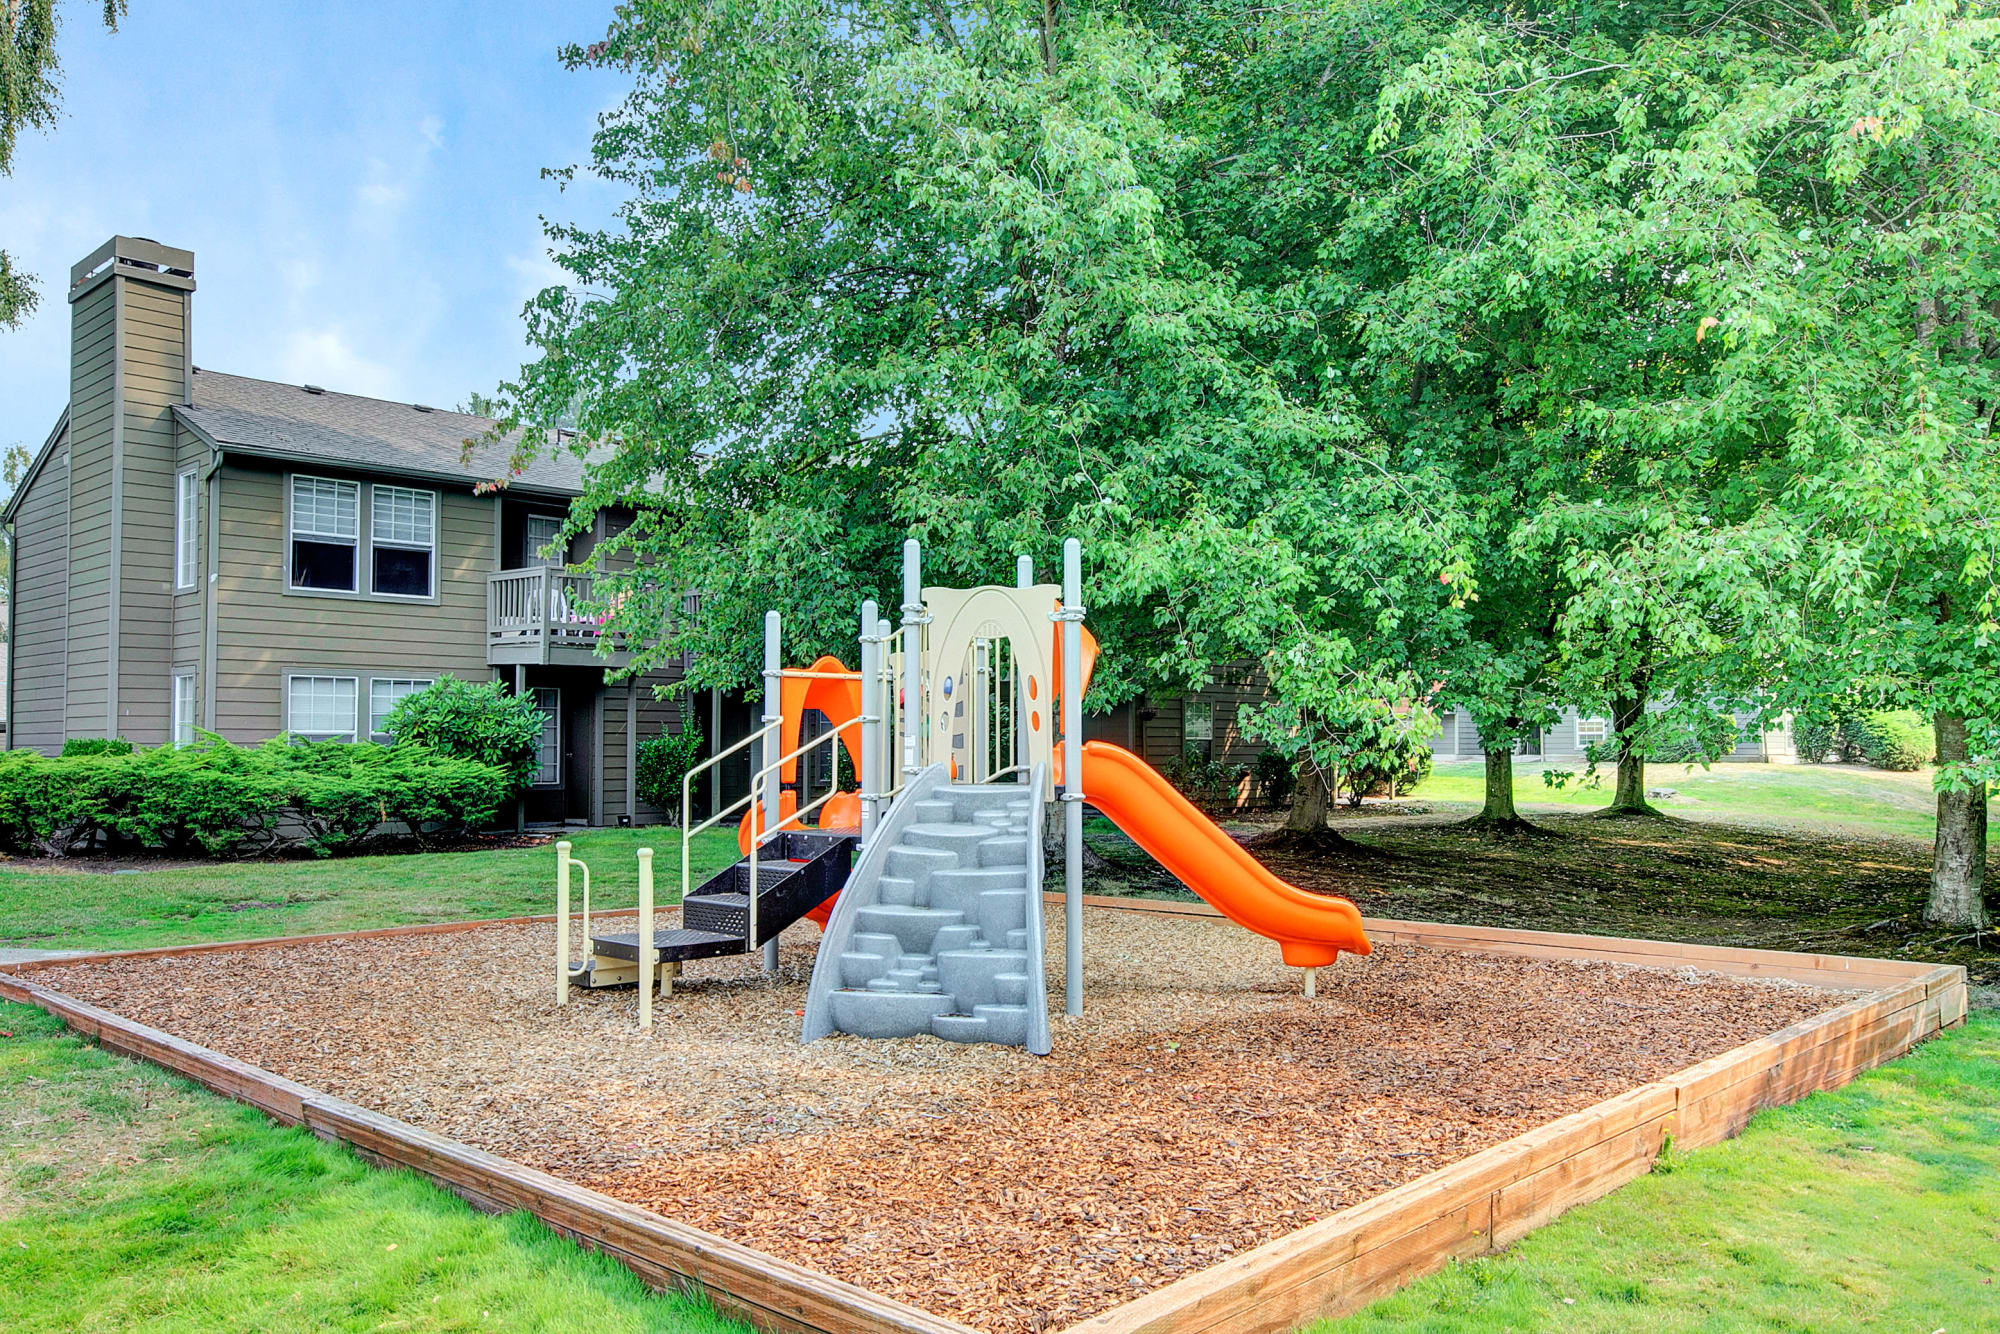 The fun playground at Waters Edge Apartments in Kent, Washington